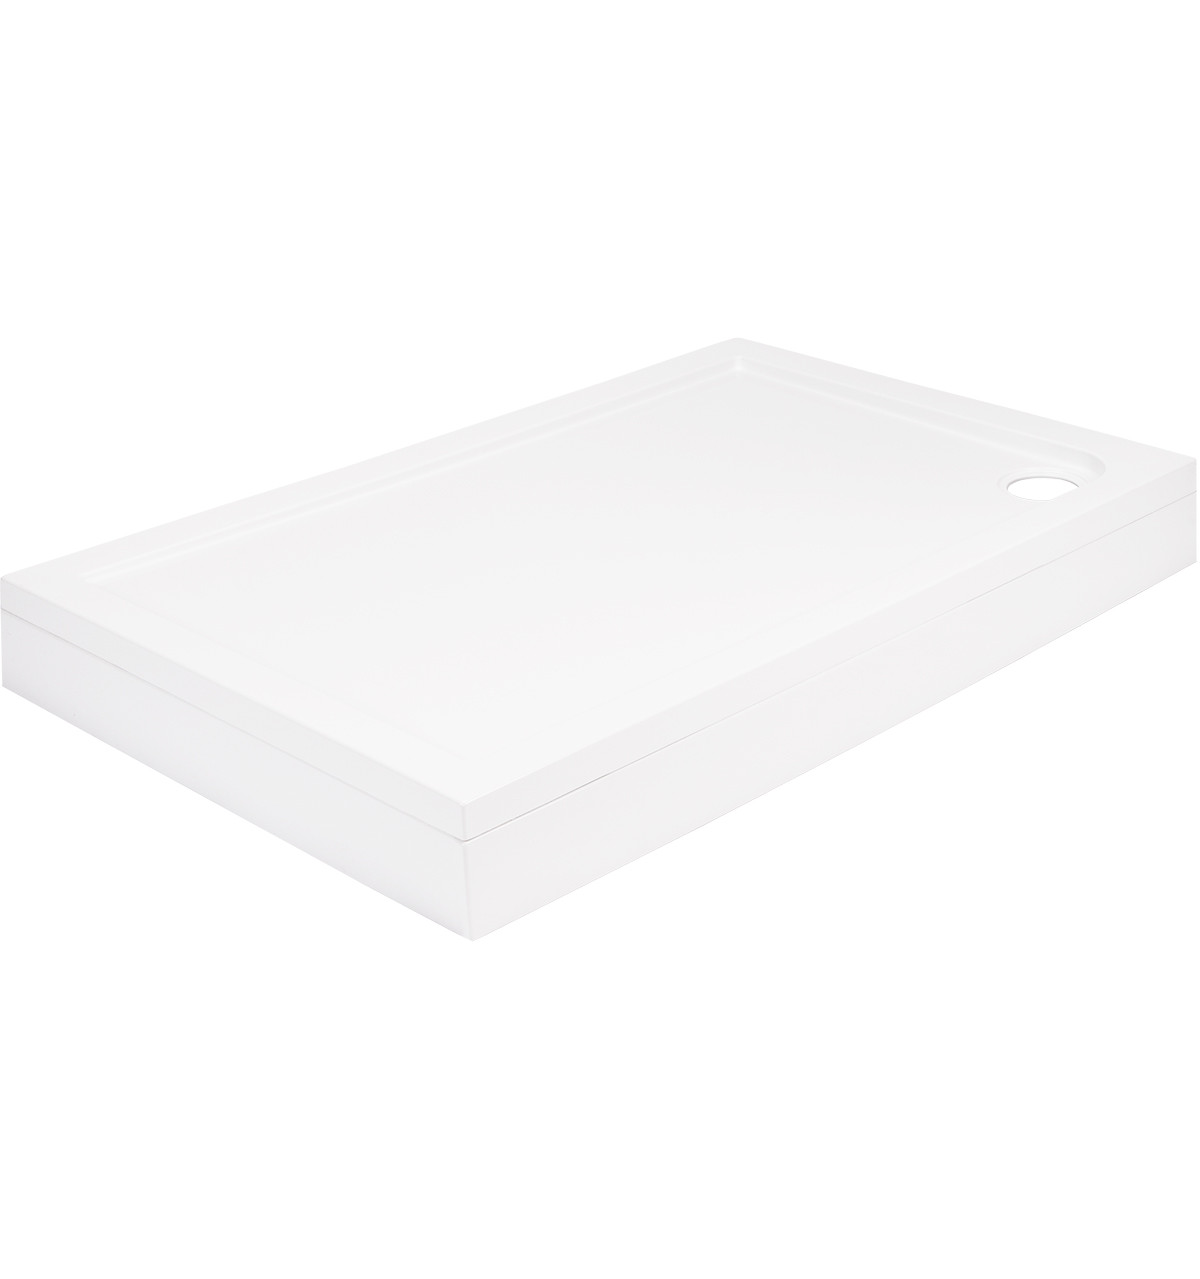 40mm Pearlstone 1000 x 800 Rectangular Shower Tray & Plinth